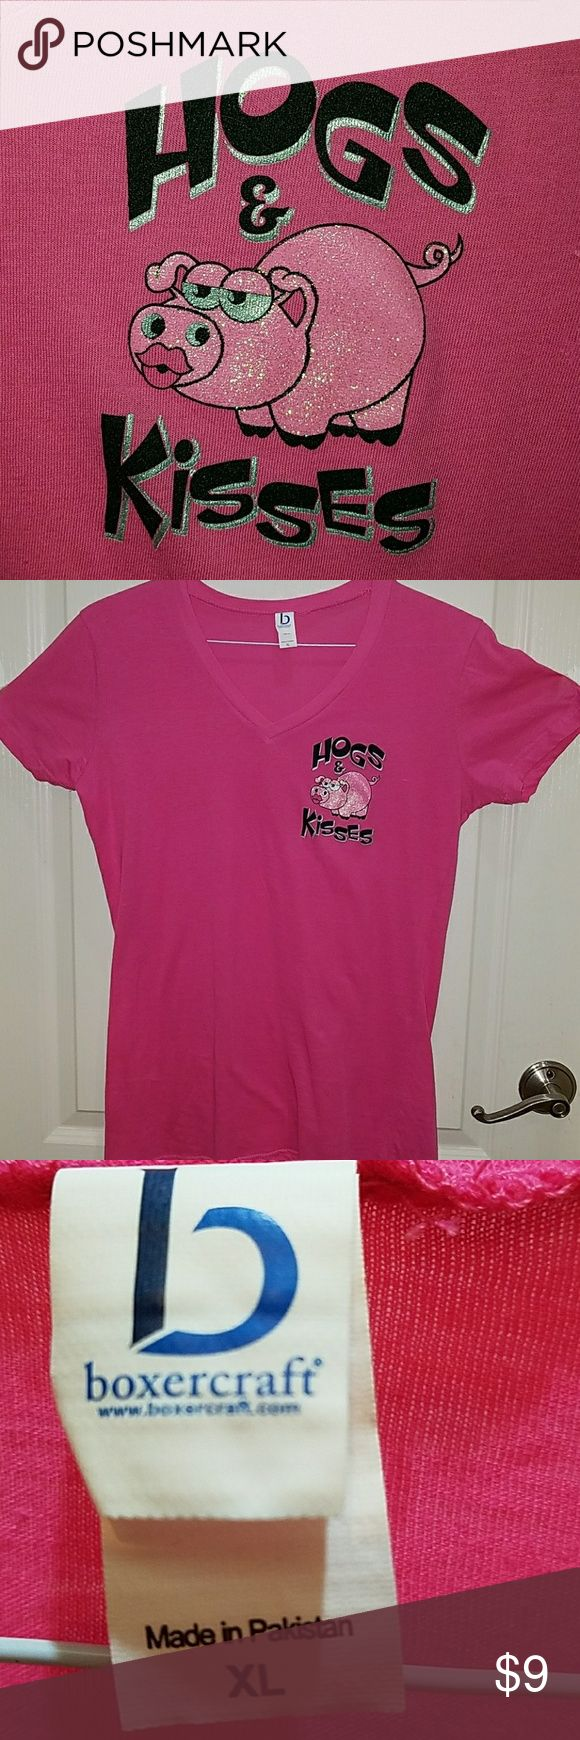 Ladies Hogs and Kisses T-shirt Pink V-neck t-shirt,  tag says XL, but it runs small, more like a Large.  Great for Harley girls! Smoke free home. Never worn. Boxercraft Tops Tees - Short Sleeve